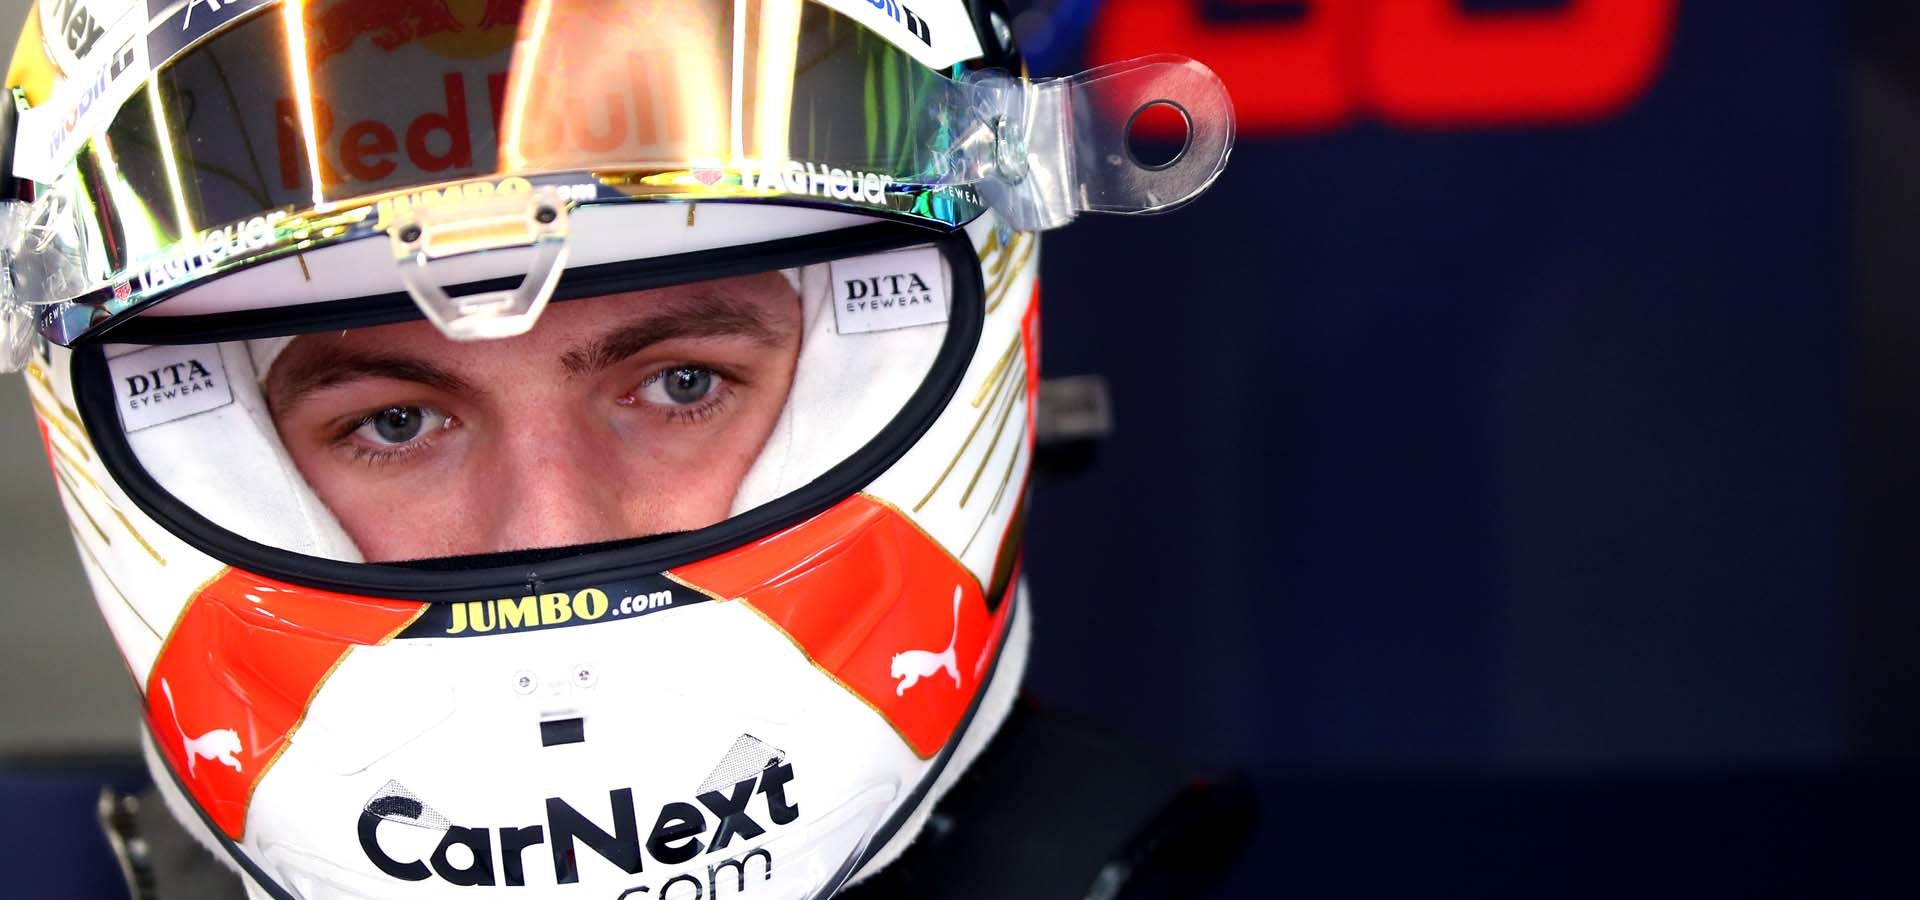 BARCELONA, SPAIN - FEBRUARY 26: Max Verstappen of Netherlands and Red Bull Racing prepares to drive in the garage during Day One of F1 Winter Testing at Circuit de Barcelona-Catalunya on February 26, 2020 in Barcelona, Spain. (Photo by Mark Thompson/Getty Images) // Getty Images / Red Bull Content Pool  // AP-237UDCBFD1W11 // Usage for editorial use only //